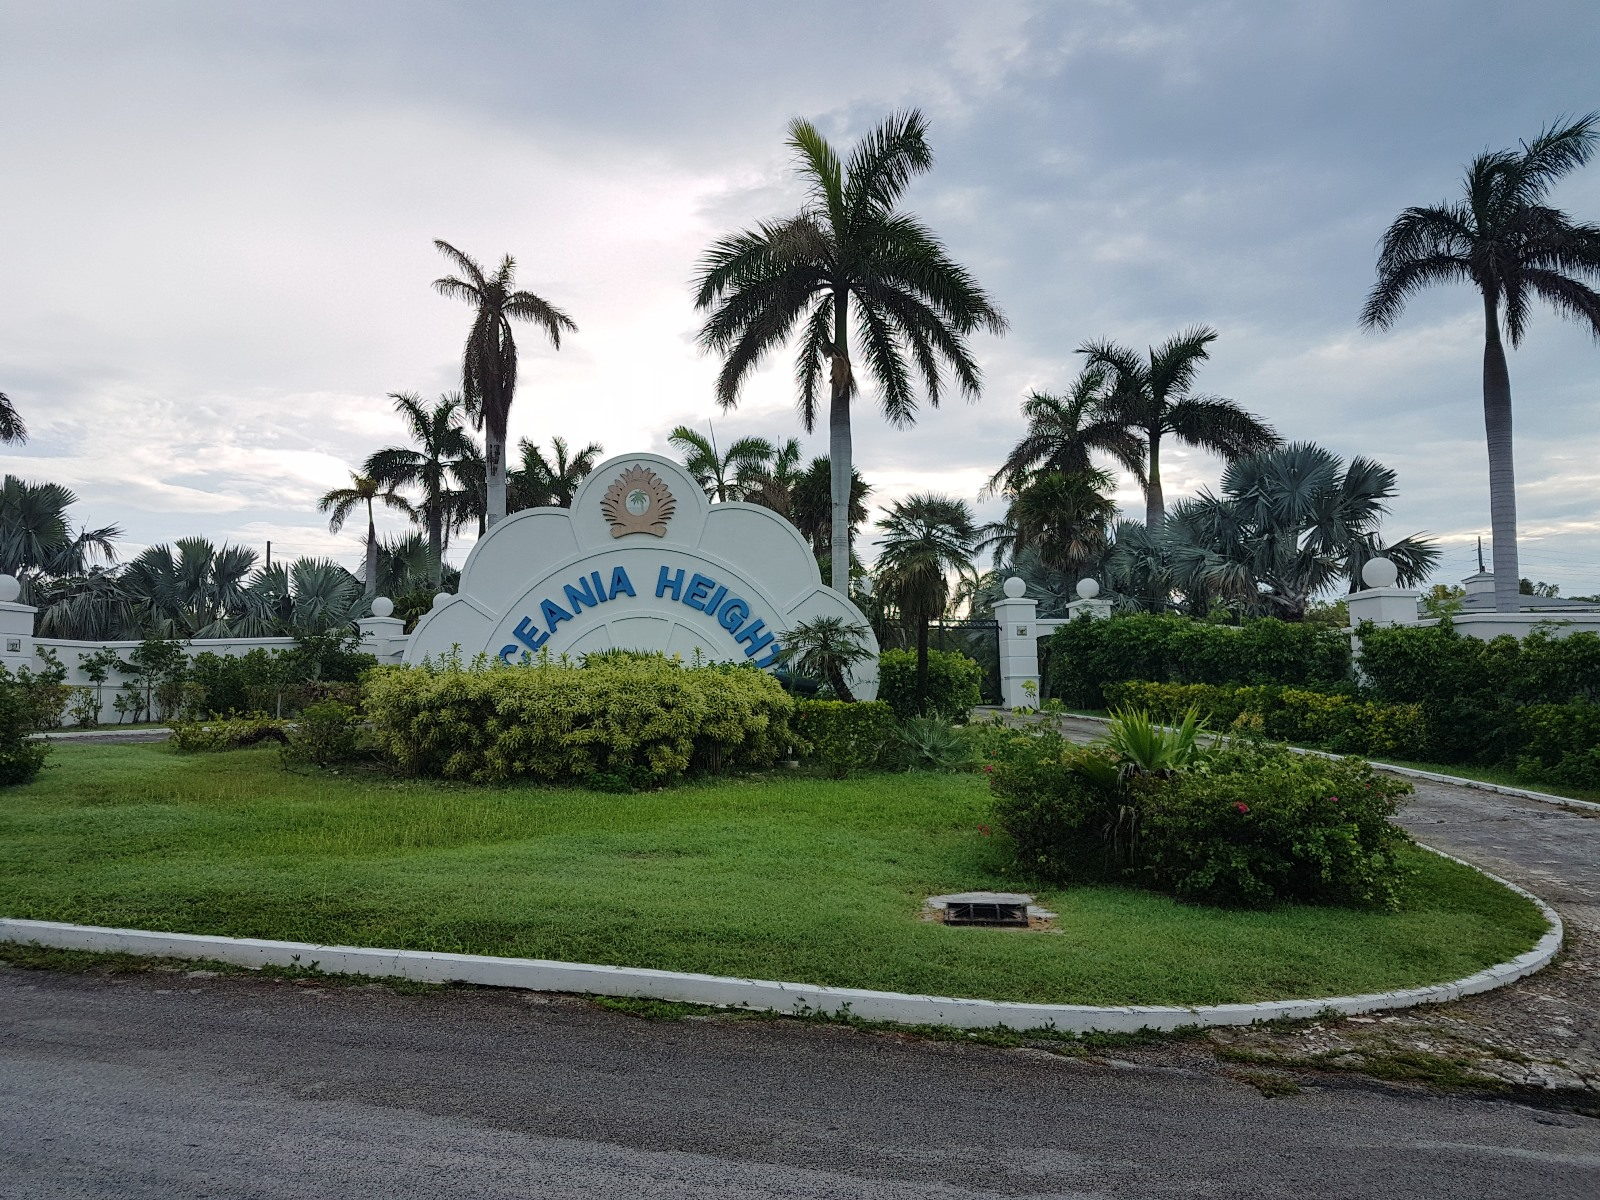 Land for Sale at Single-Family Lots at Oceania Heights Exuma, Bahamas